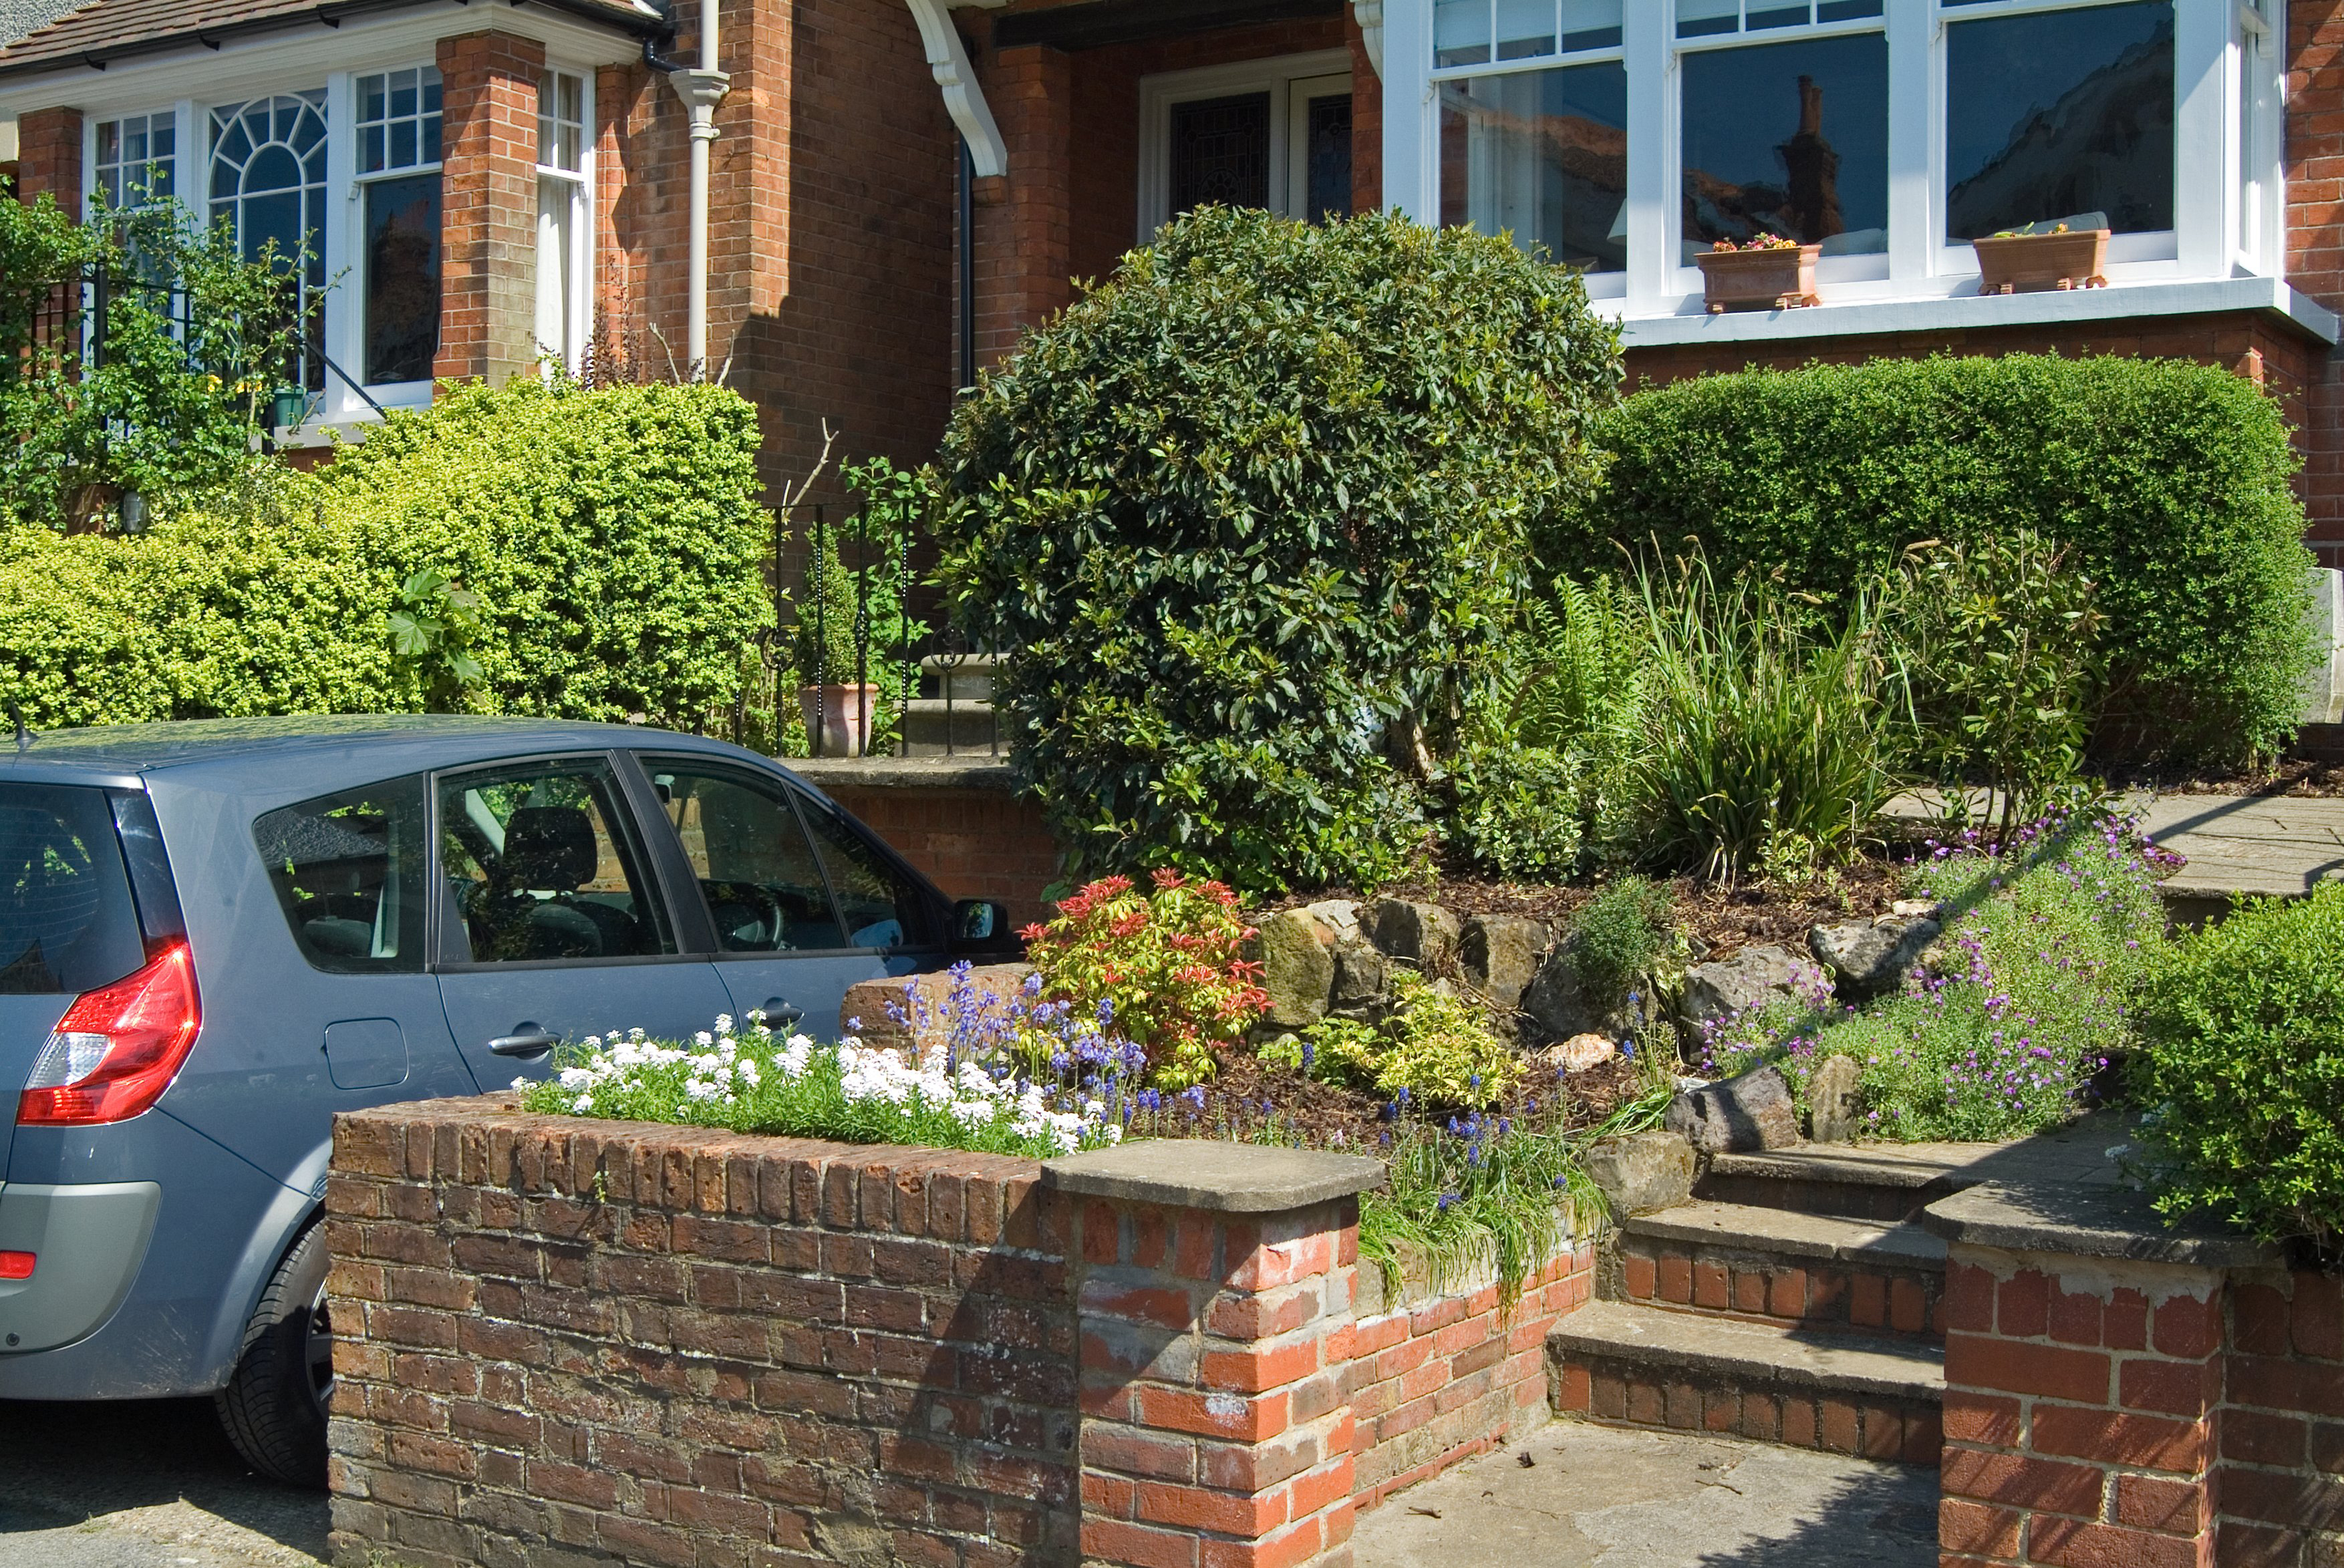 Creative hedge-planting can reduce traffic pollutants (Tim Sandall/RHS/PA)